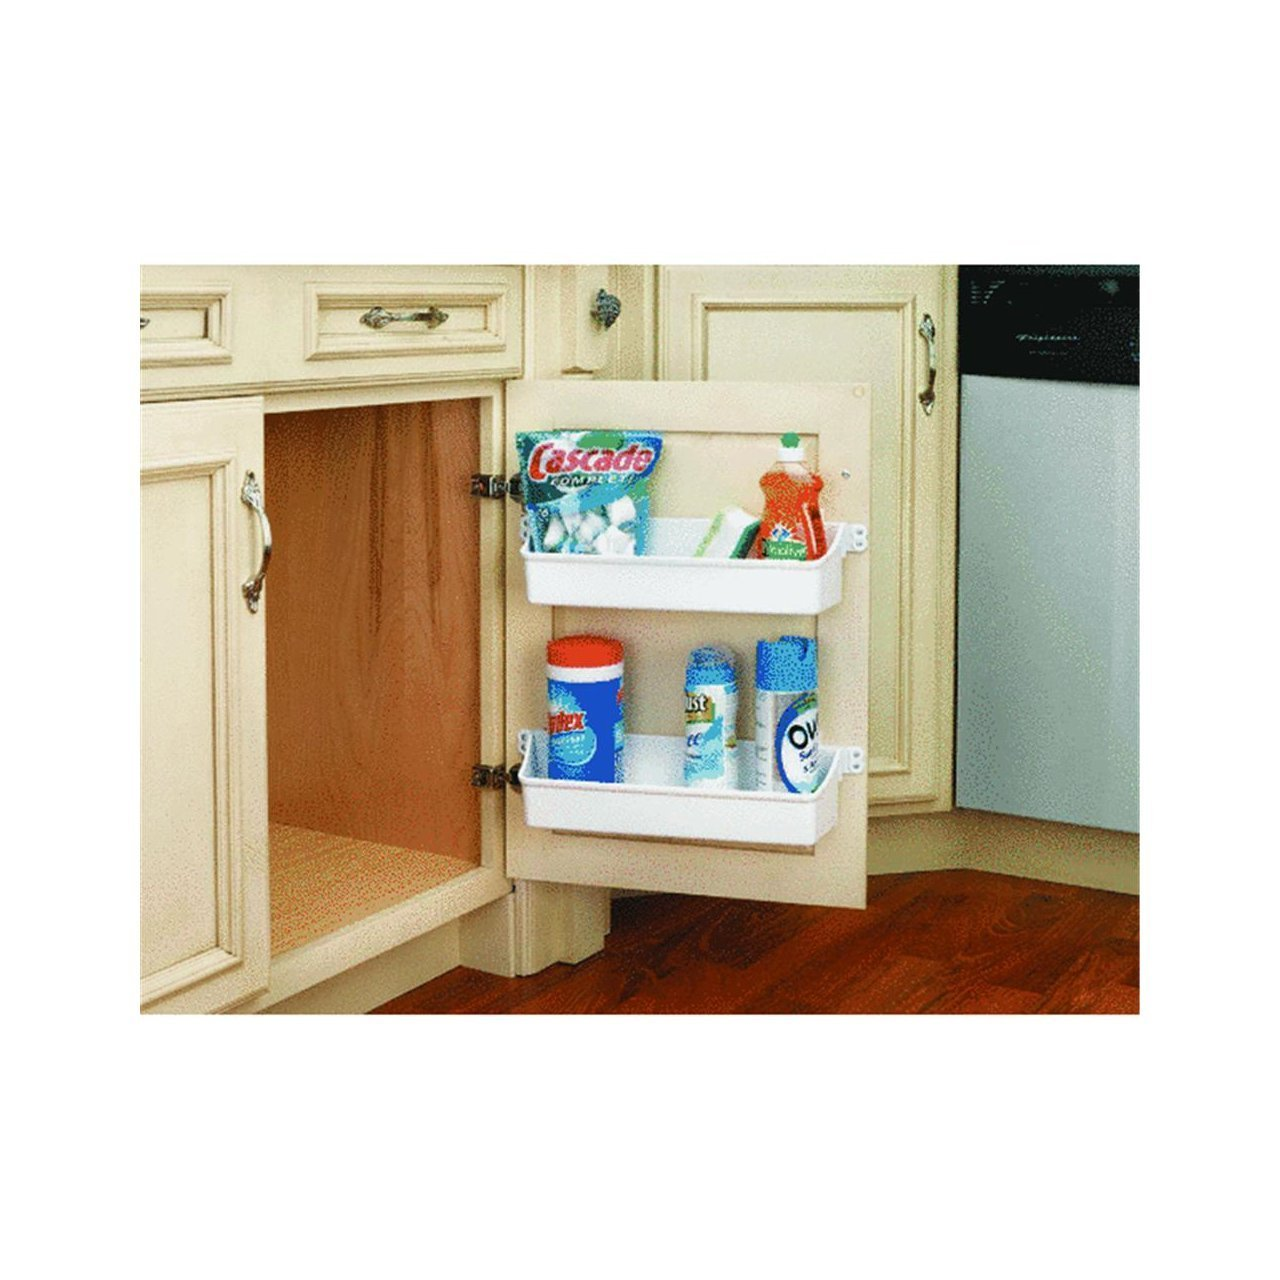 Bathroom cabinet organization specially for jacksonville for Bathroom cabinets jacksonville